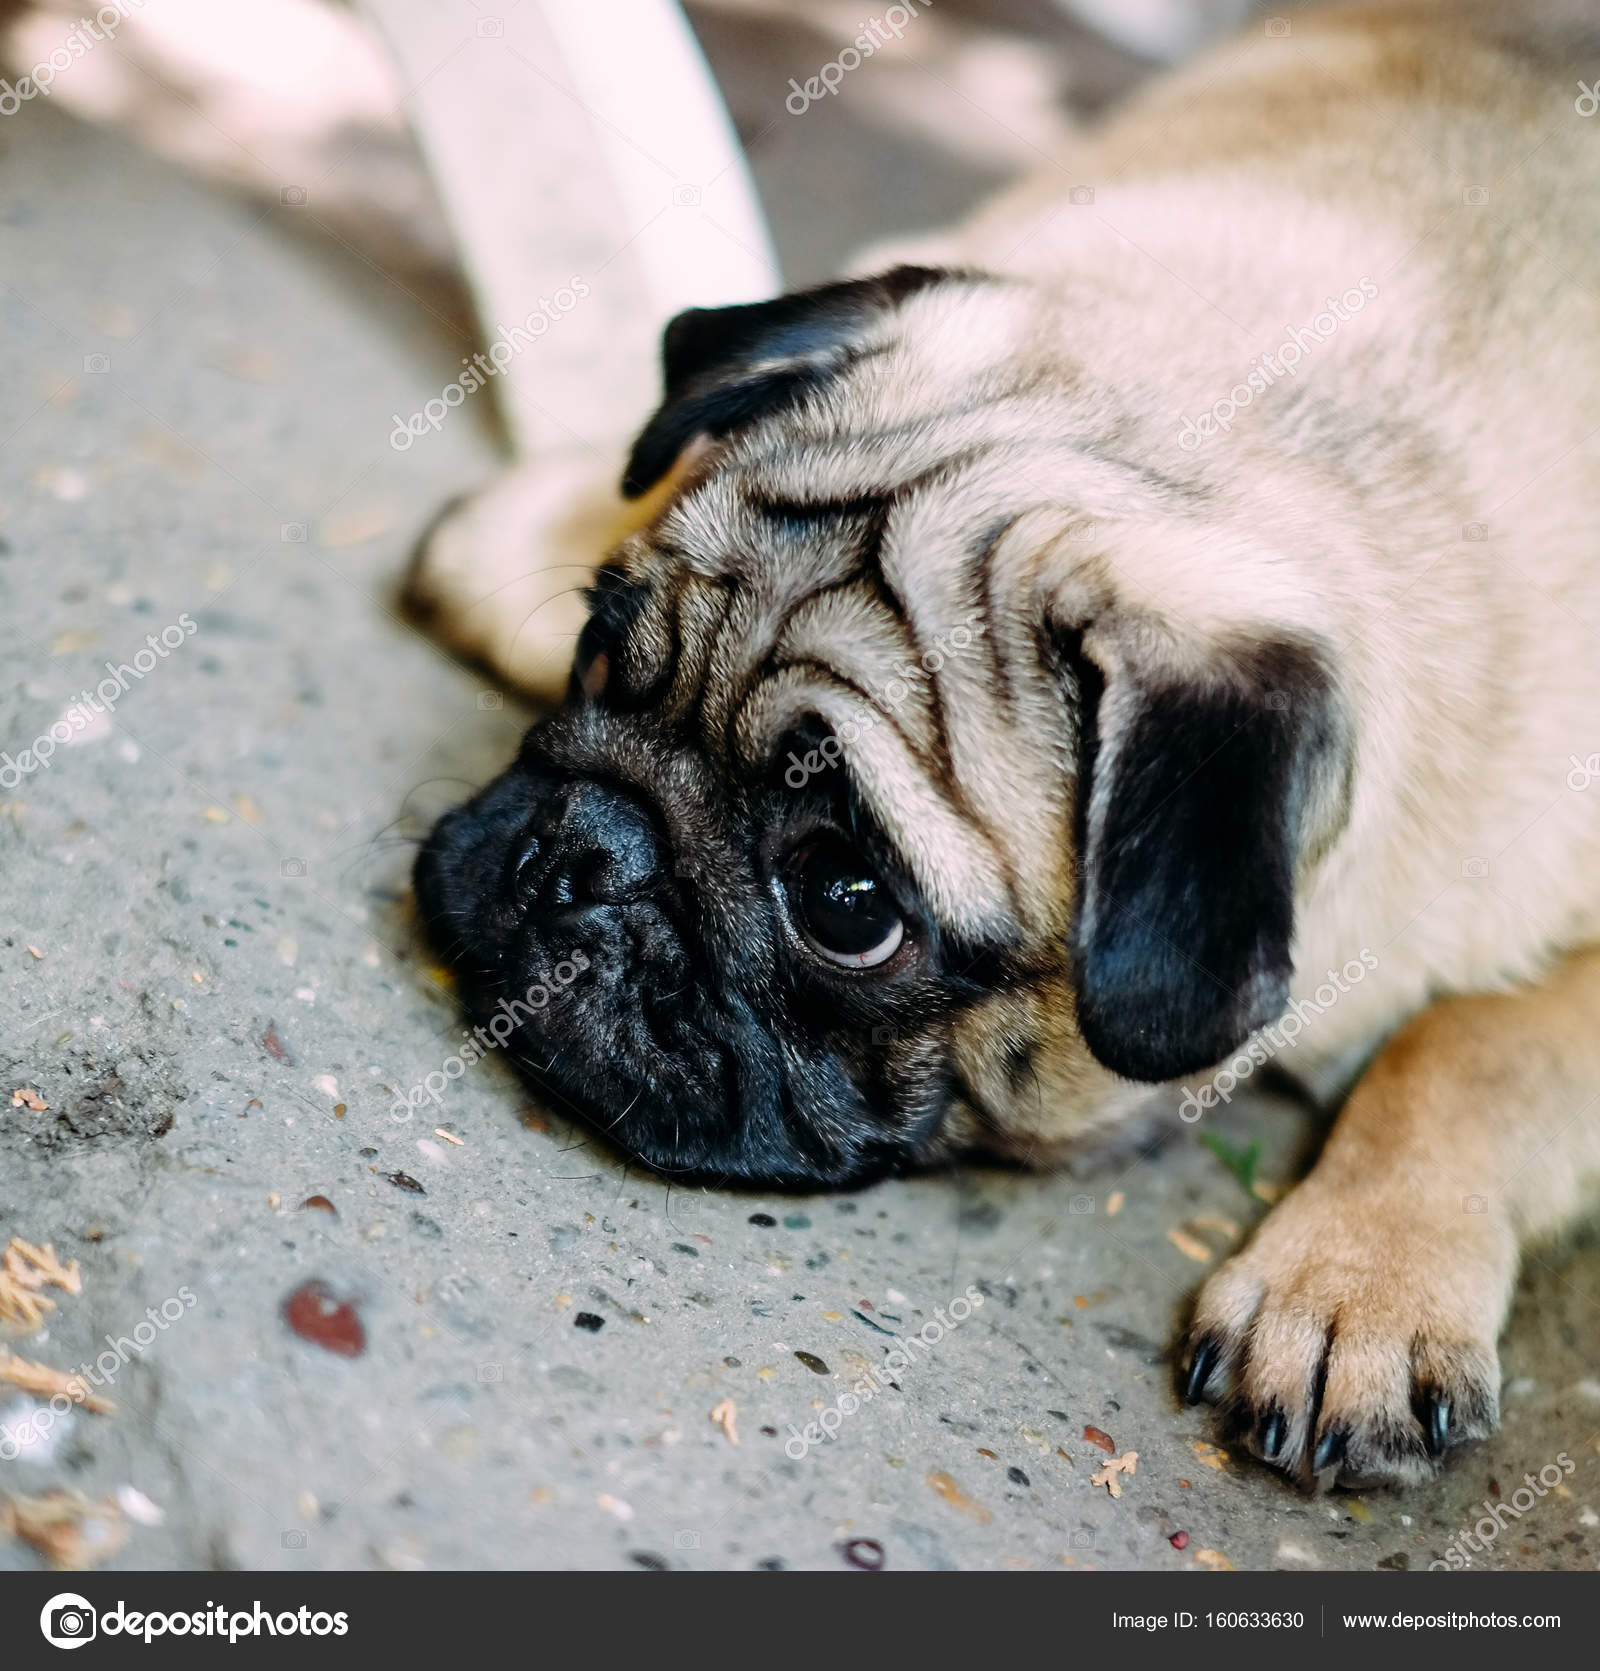 baby pug. dog pug. close up face of a very cute pug — stock photo